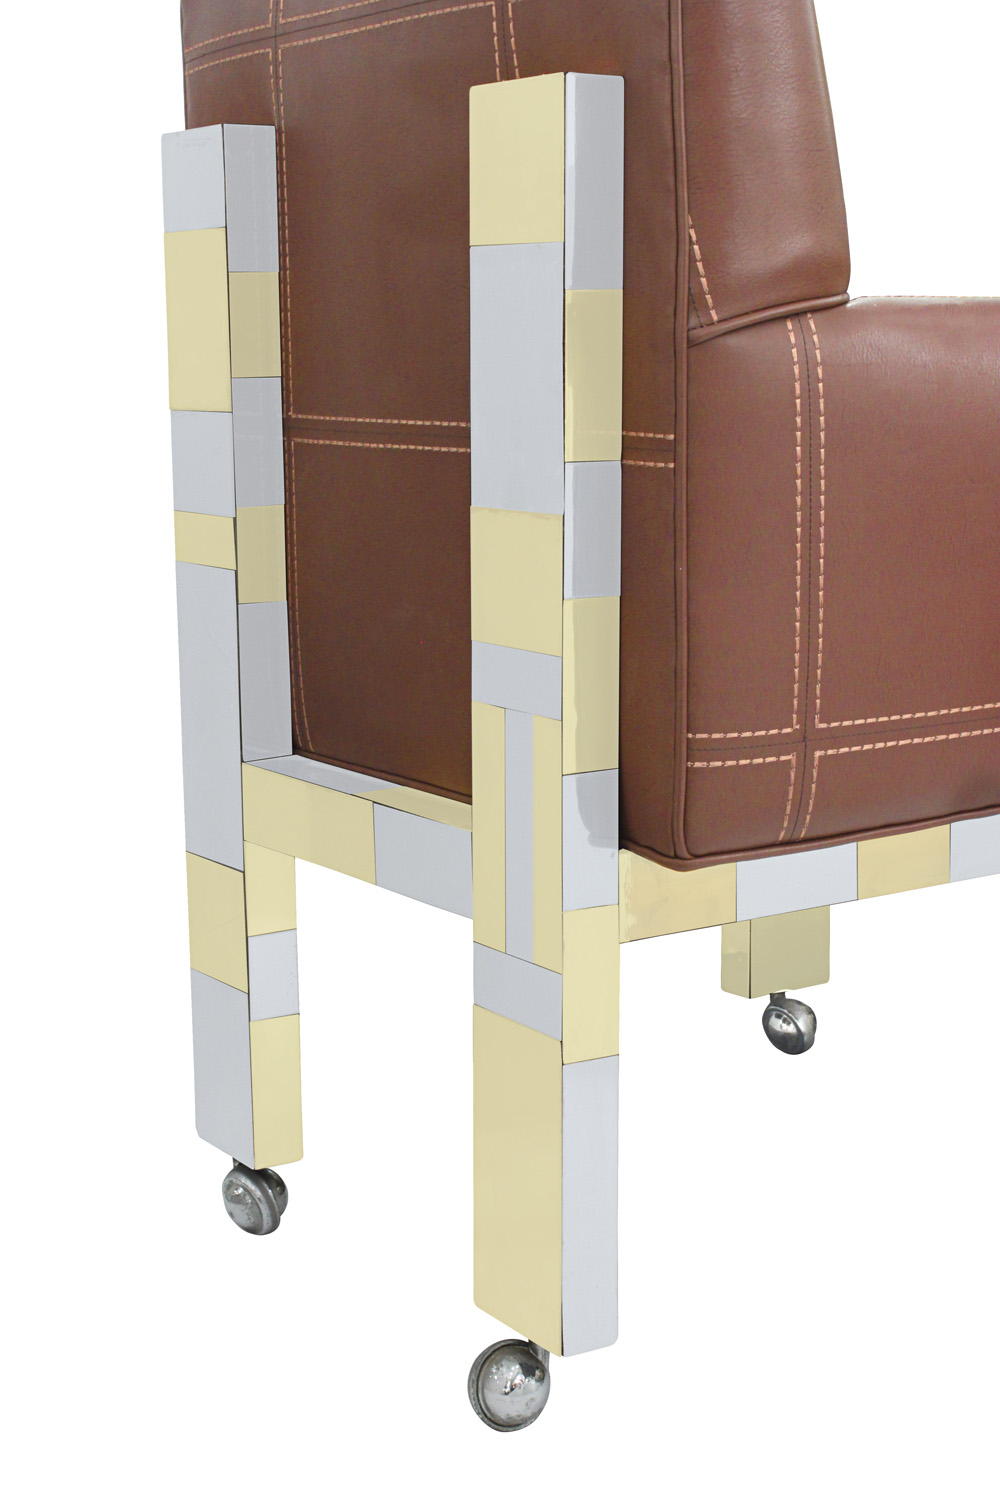 Evans 120 brass+chrome Cityscape armchairs24 detail4 hires.jpg